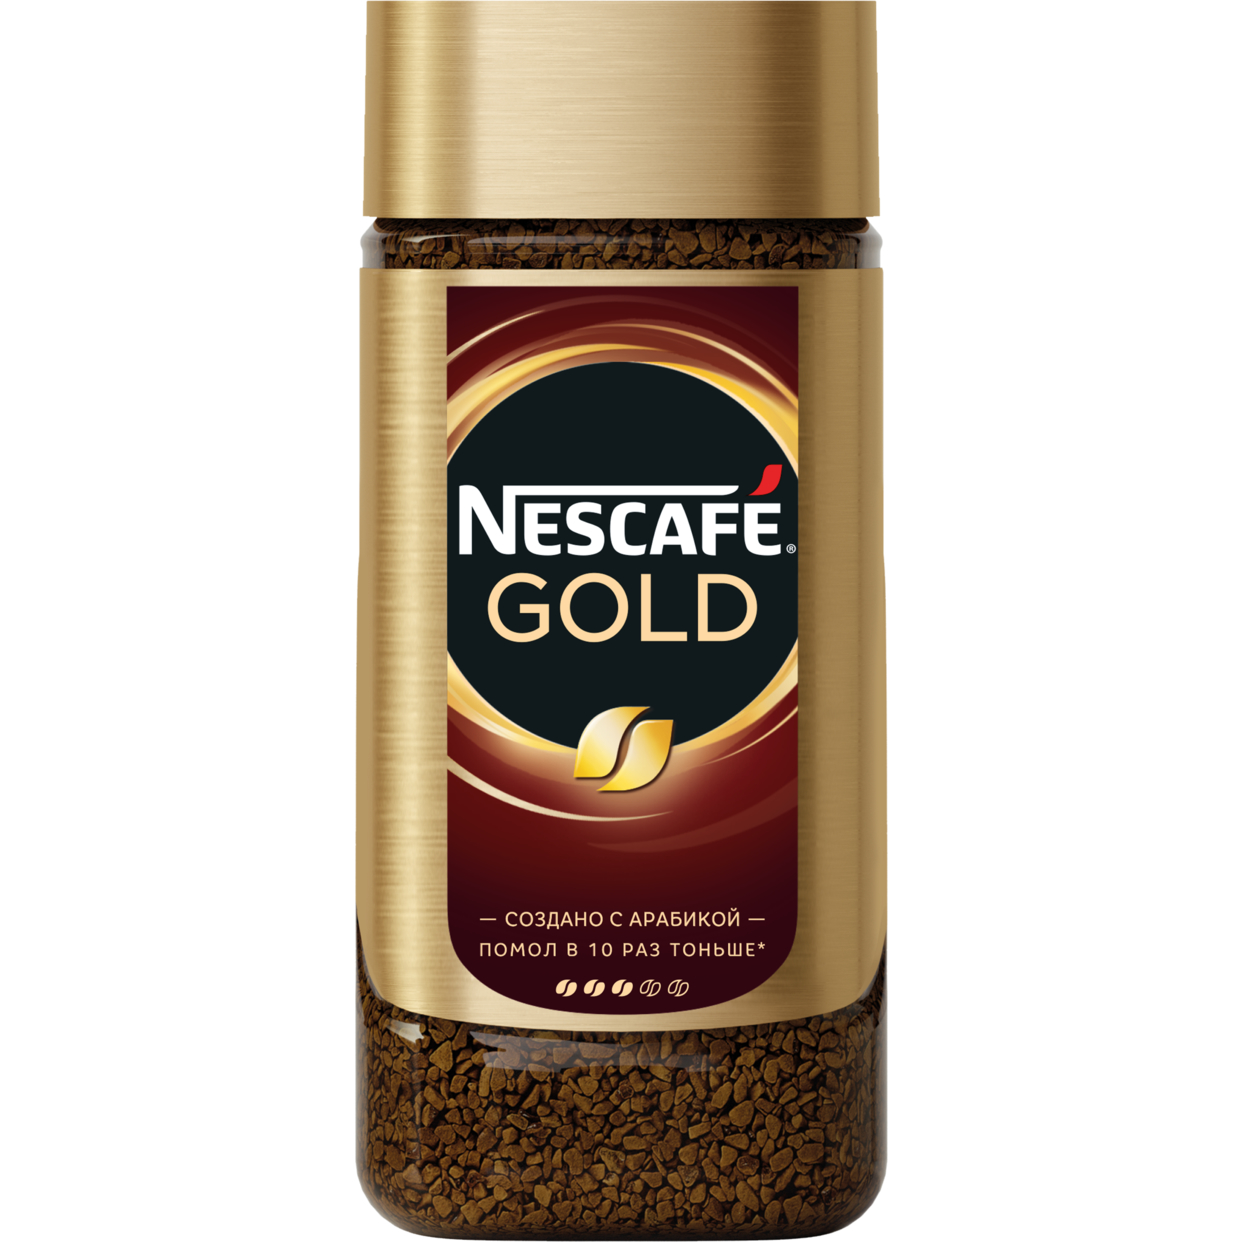 100 % натур. кофе. nescafe gold. натур. раствор. субл. кофе с доб. нат. жар. мол. кофе ст/б 190г